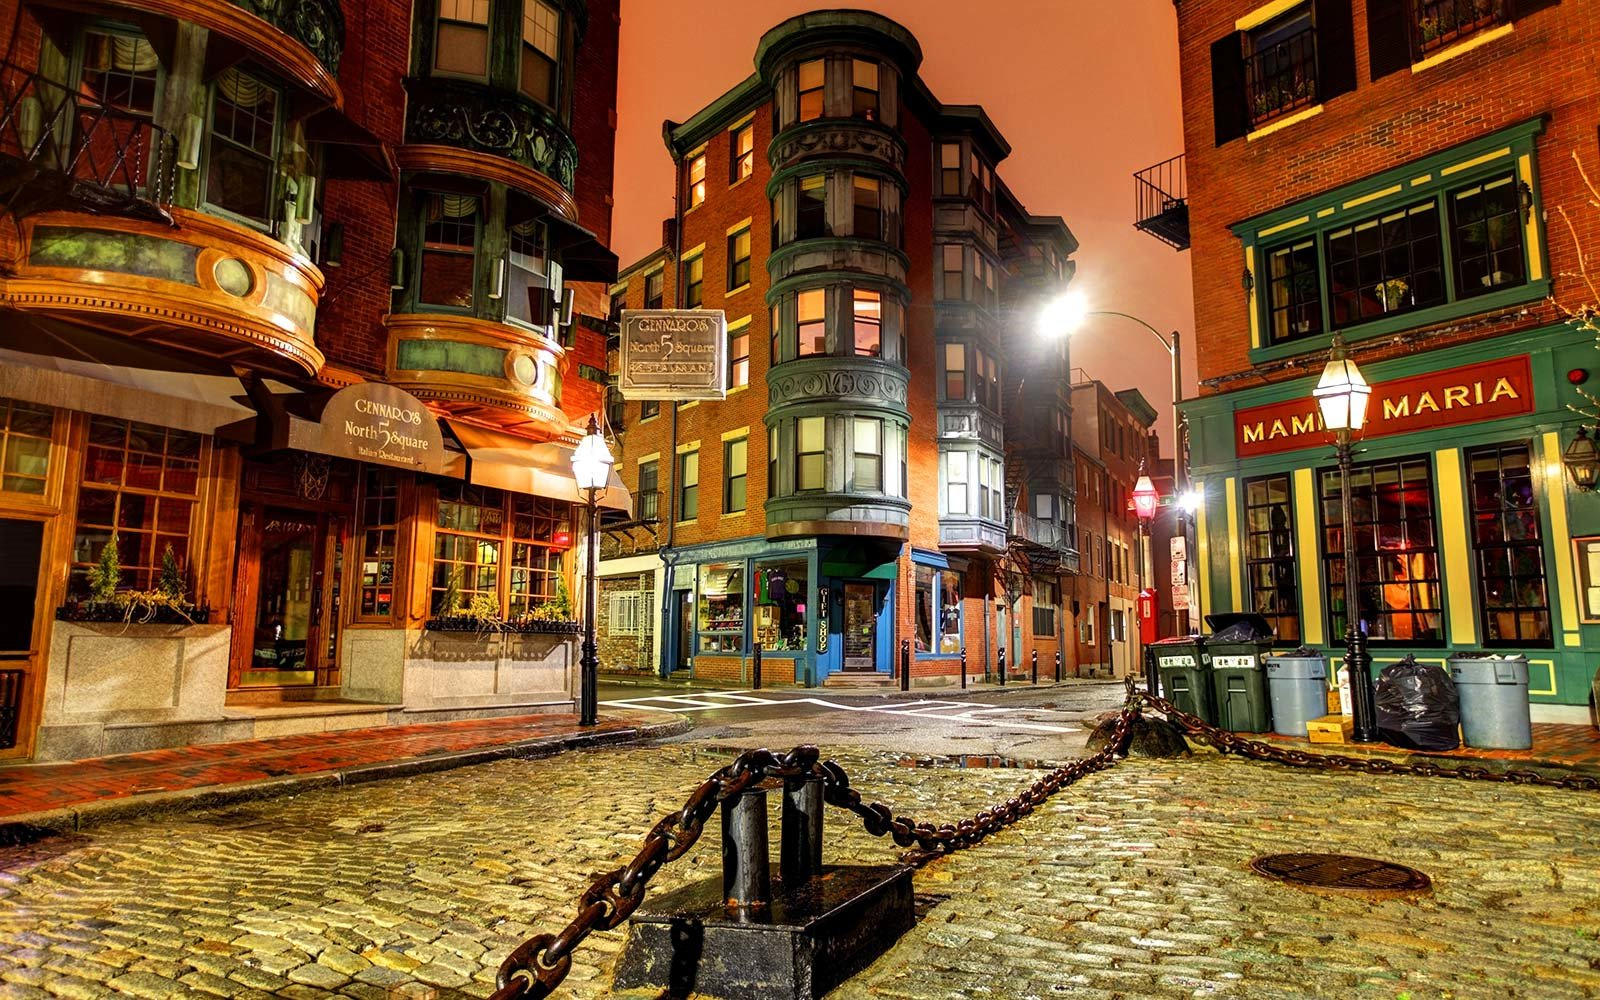 North End Is A The Oldest Neighborhood In Boston Massachusetts United States